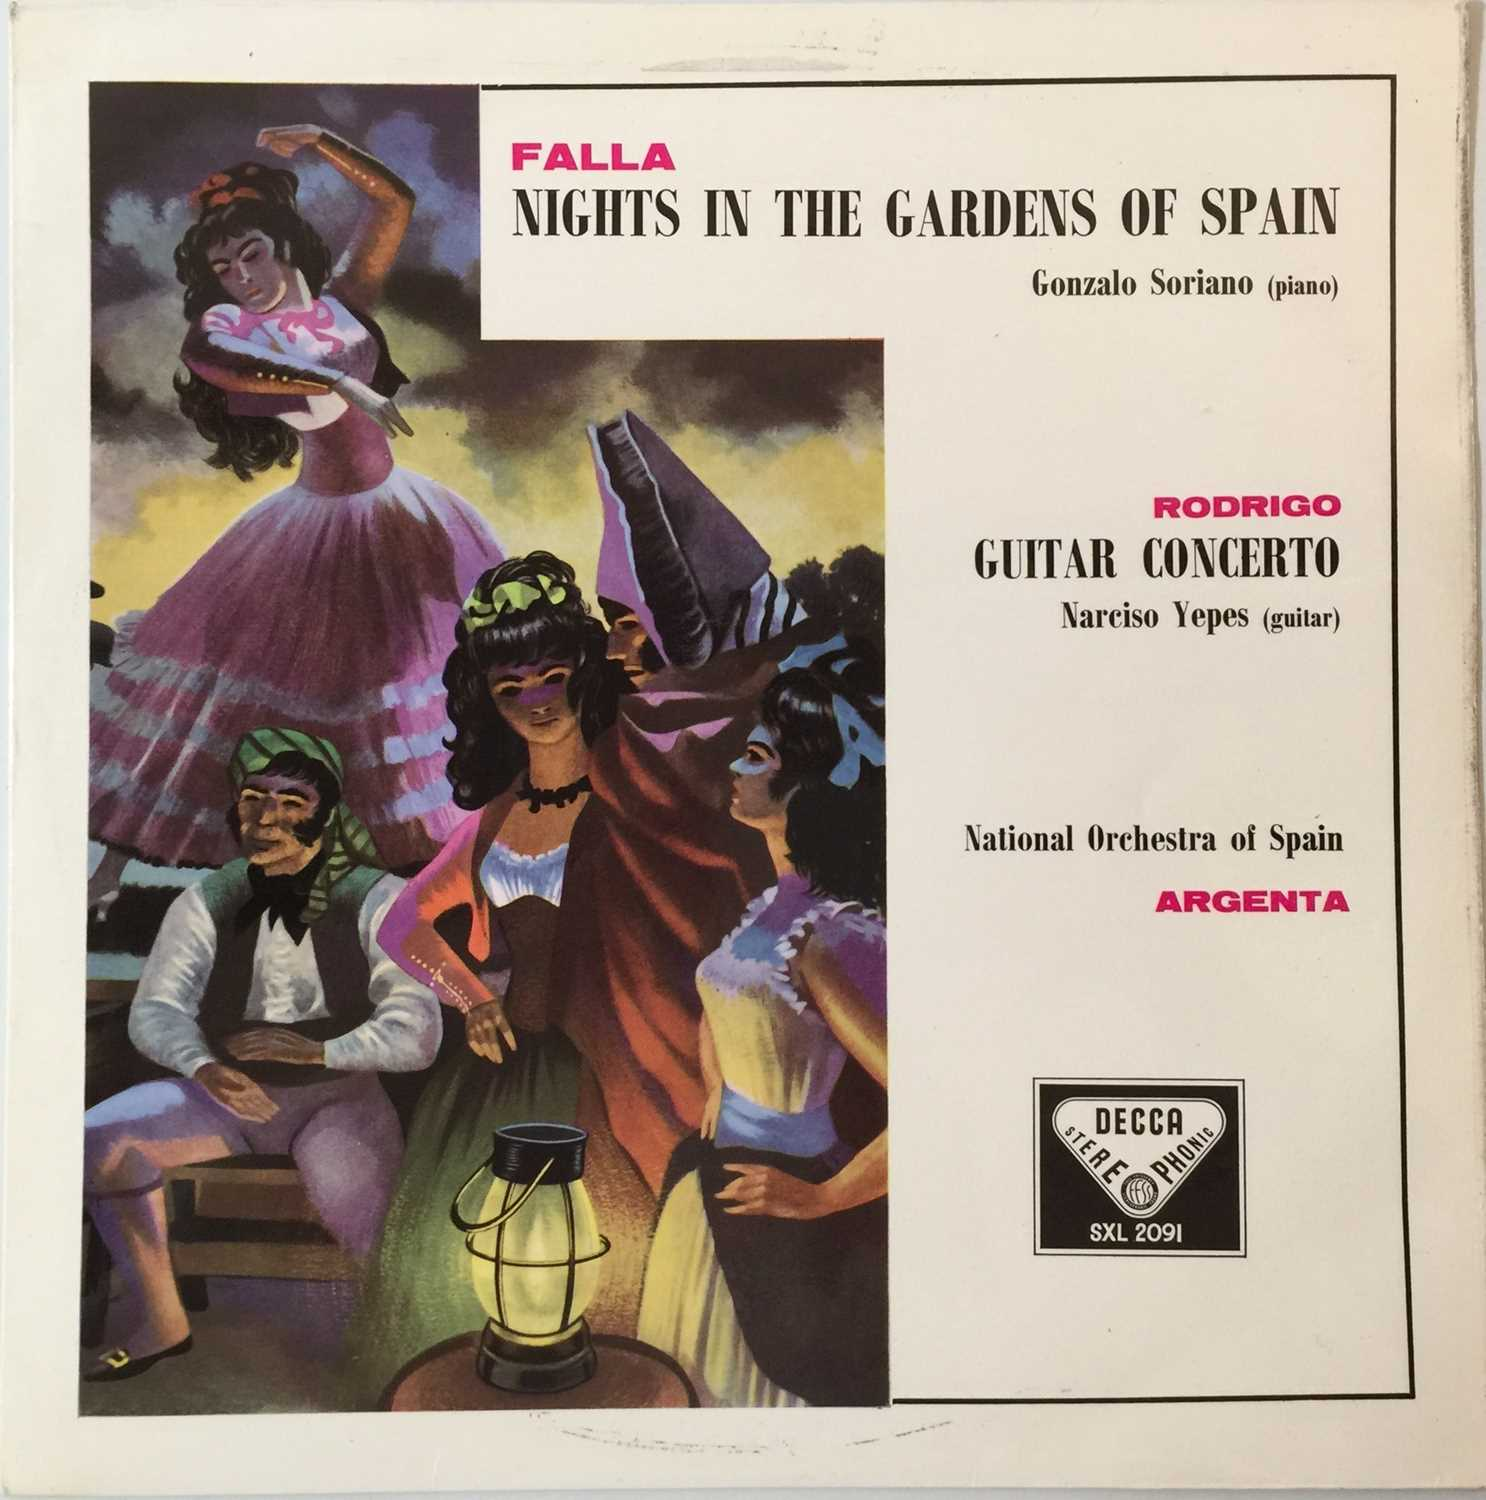 ARGENTA - FALLA: NIGHTS IN THE GARDENS OF SPAIN UK STEREO LP (SXL 2091 - ED1)